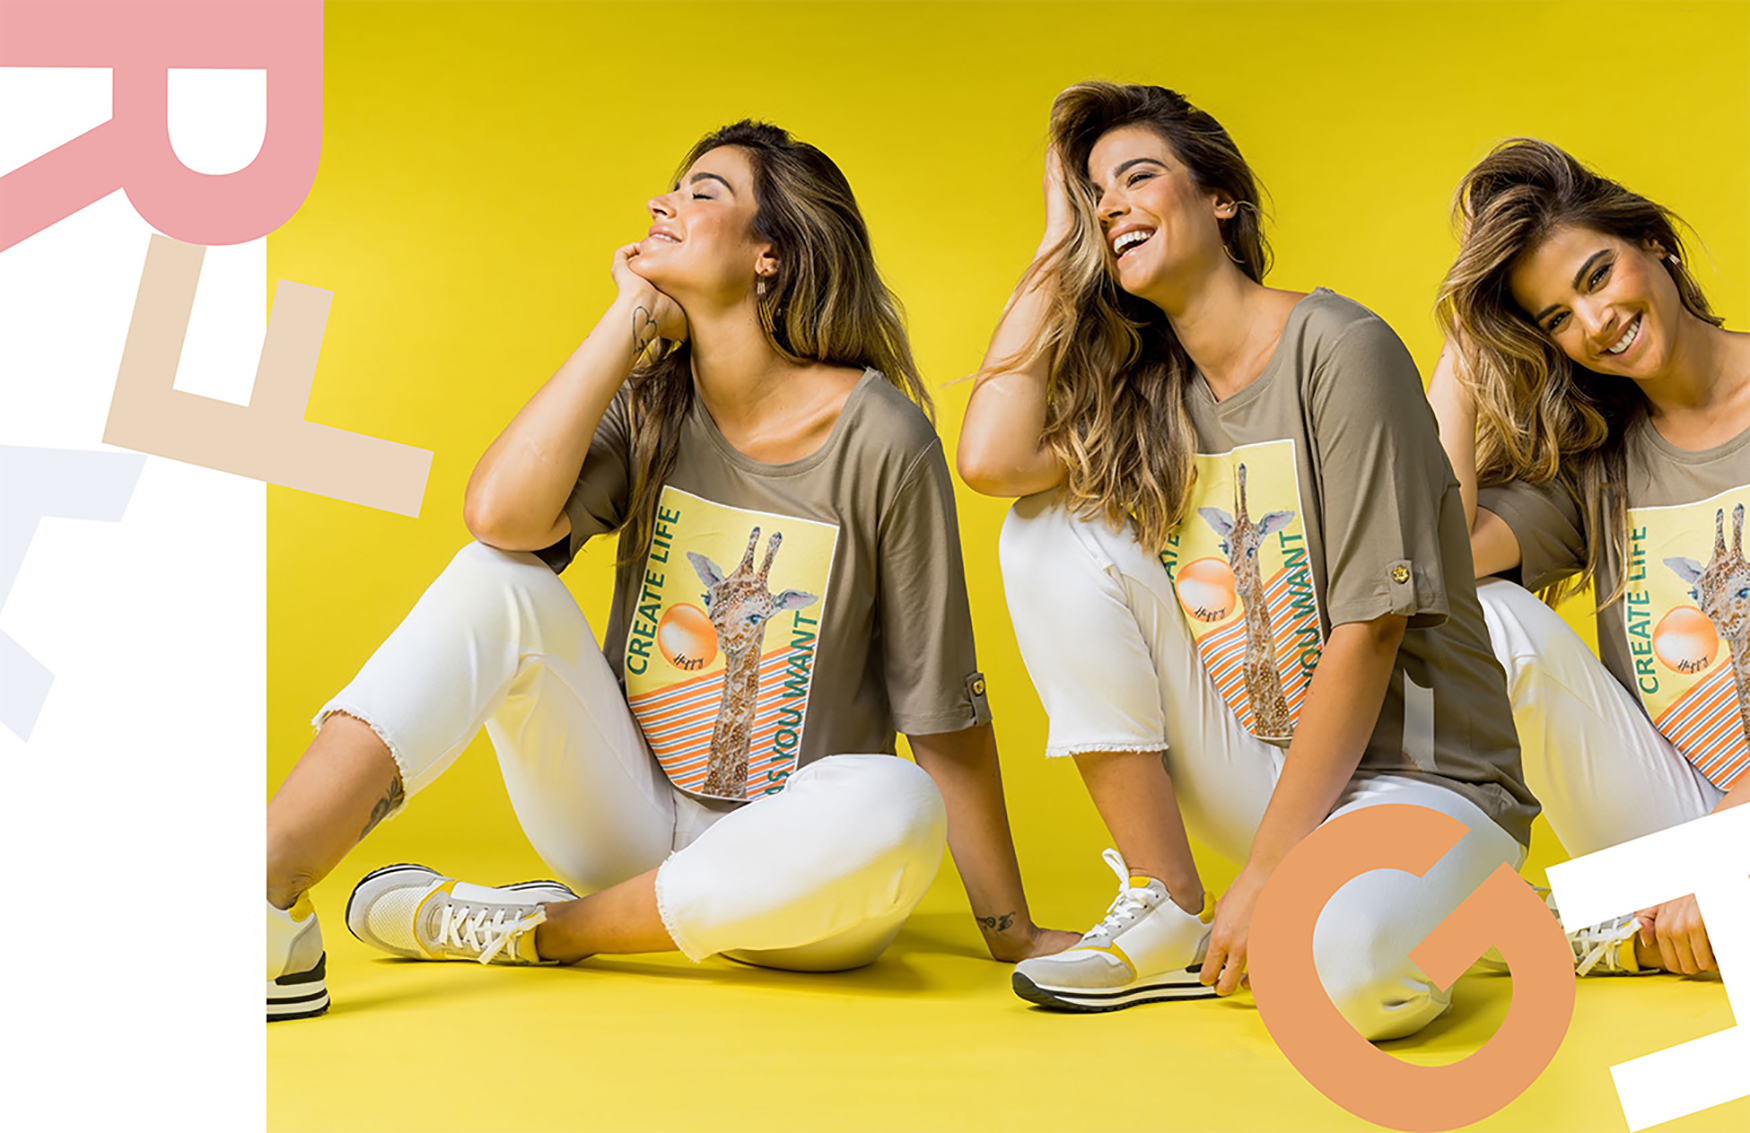 seeyou by Biggi M. Creative fashion for connecting sizes and large sizes